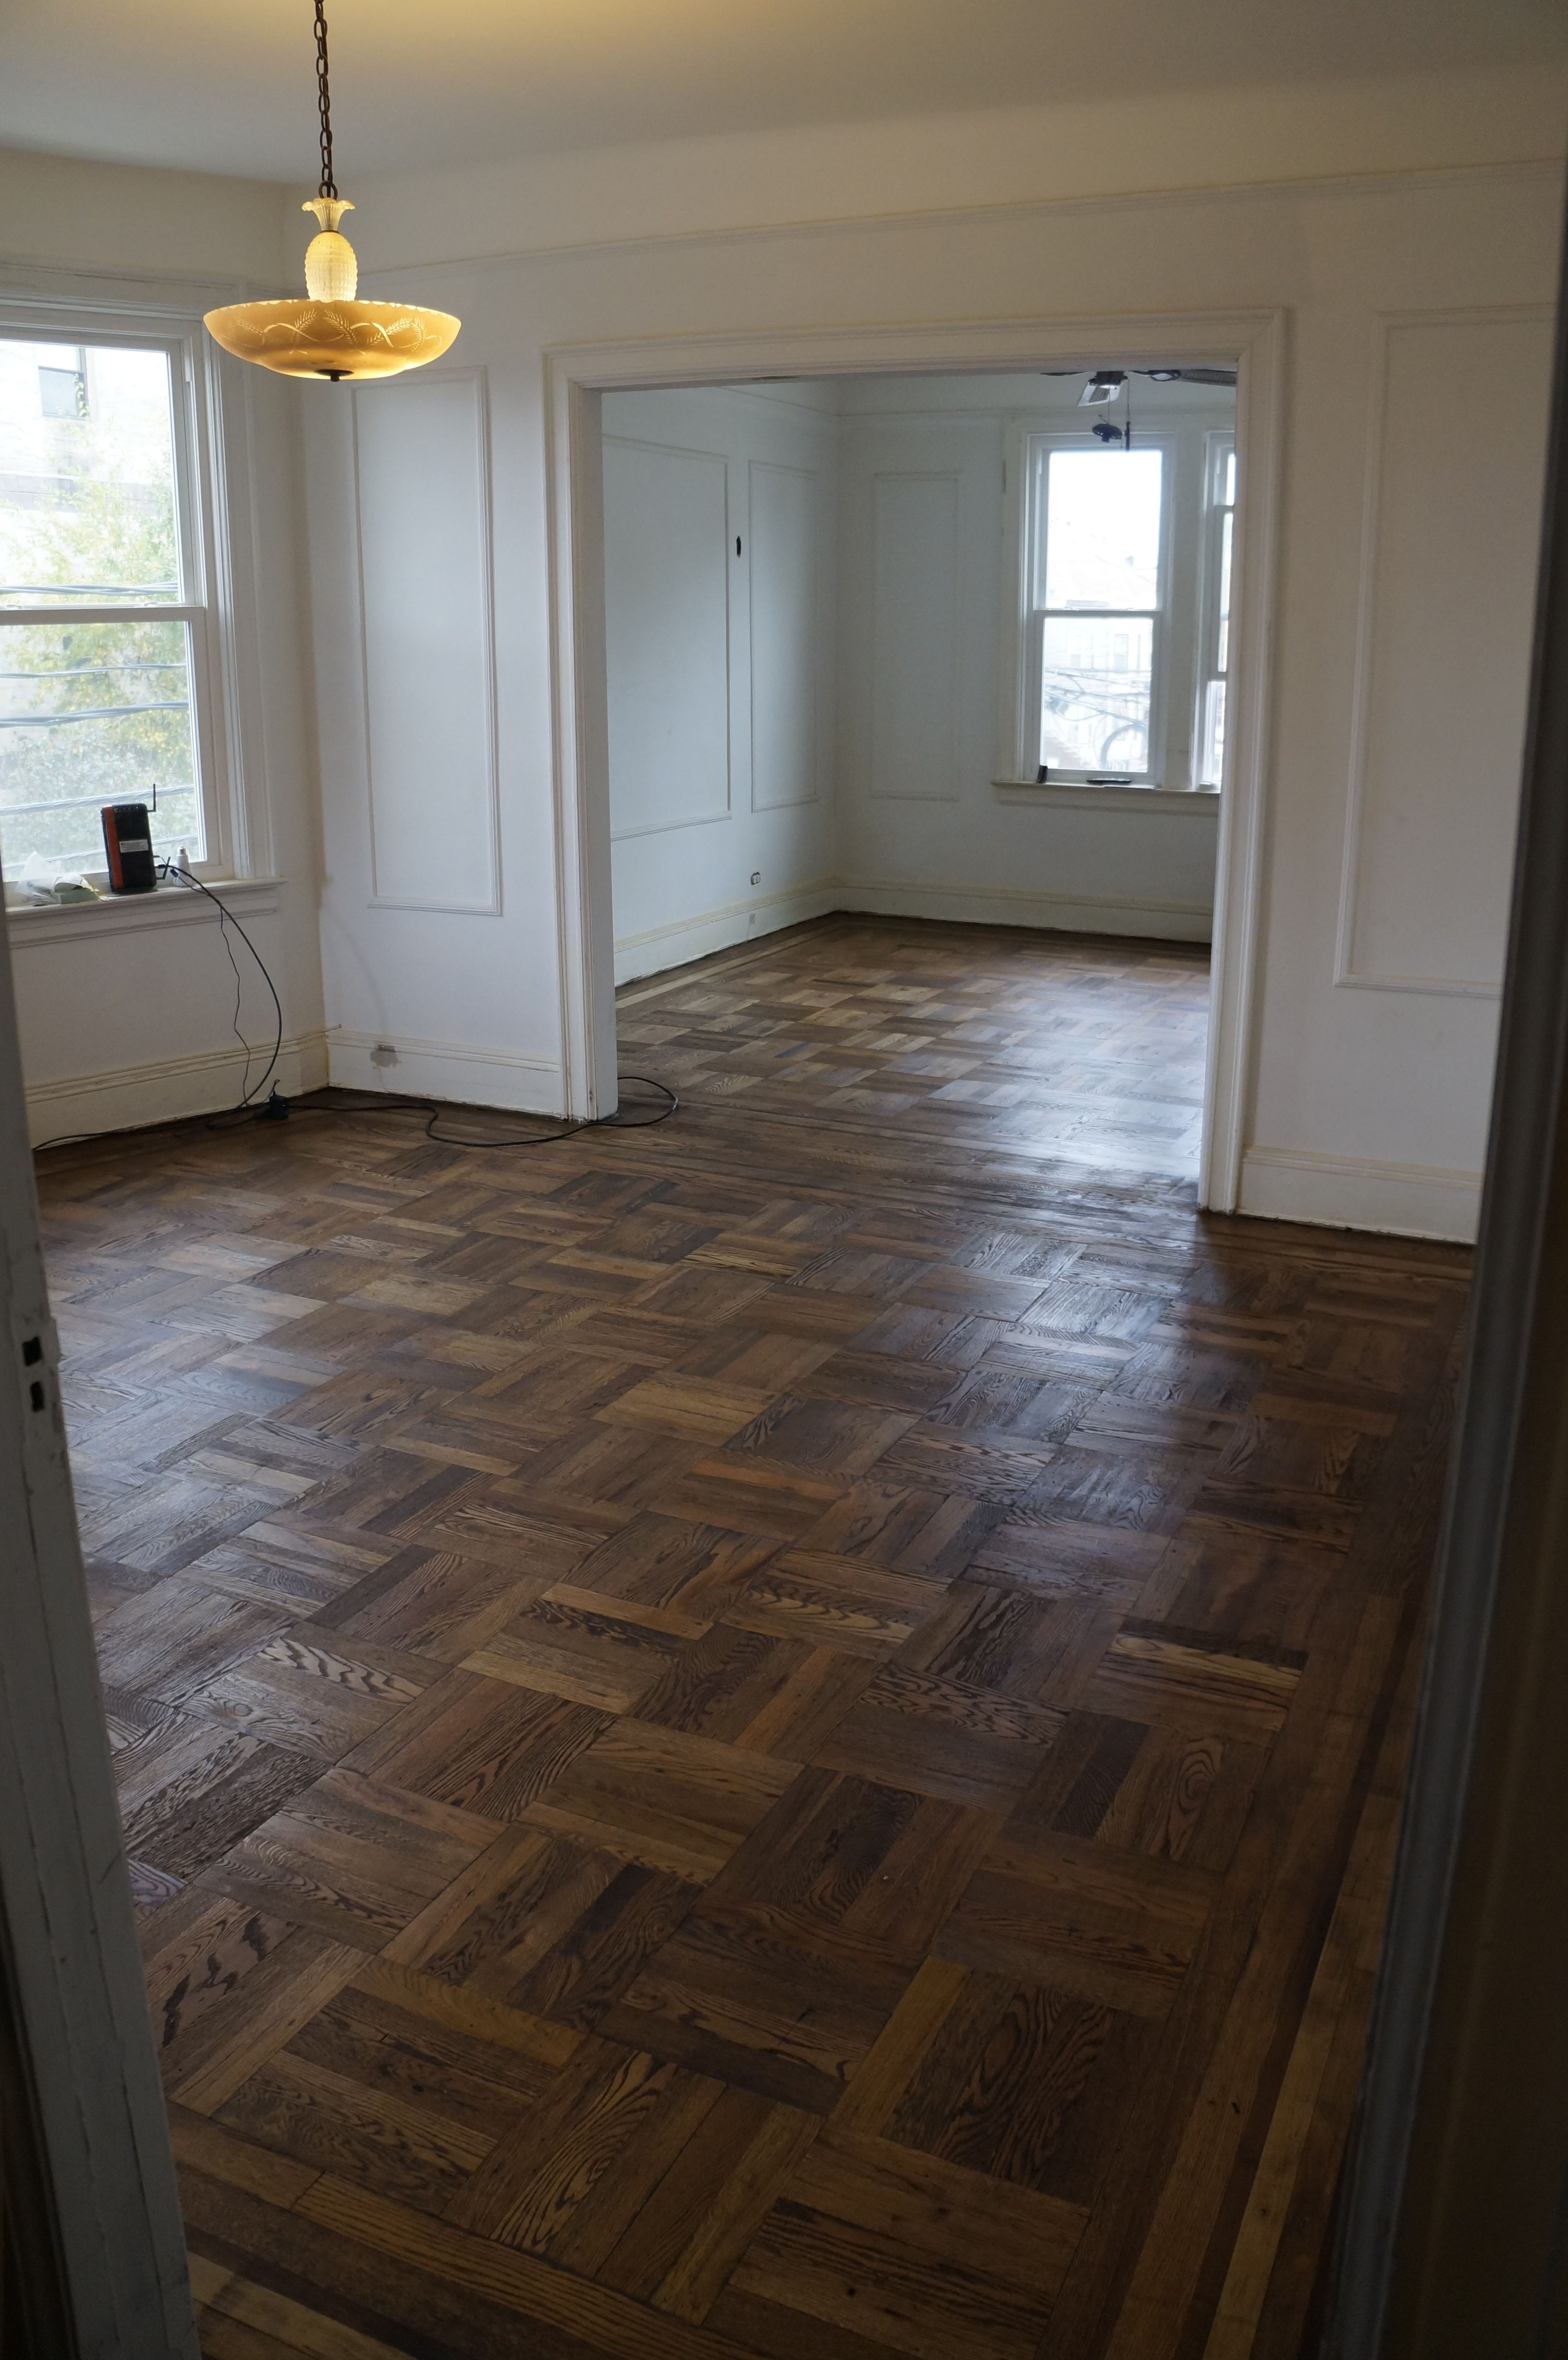 restaining hardwood floors darker without sanding of refinishing hardwood floors without sanding 1 coat of minwax dark for refinishing hardwood floors without sanding 1 coat of minwax dark walnut stain on sanded 90 year old red oak